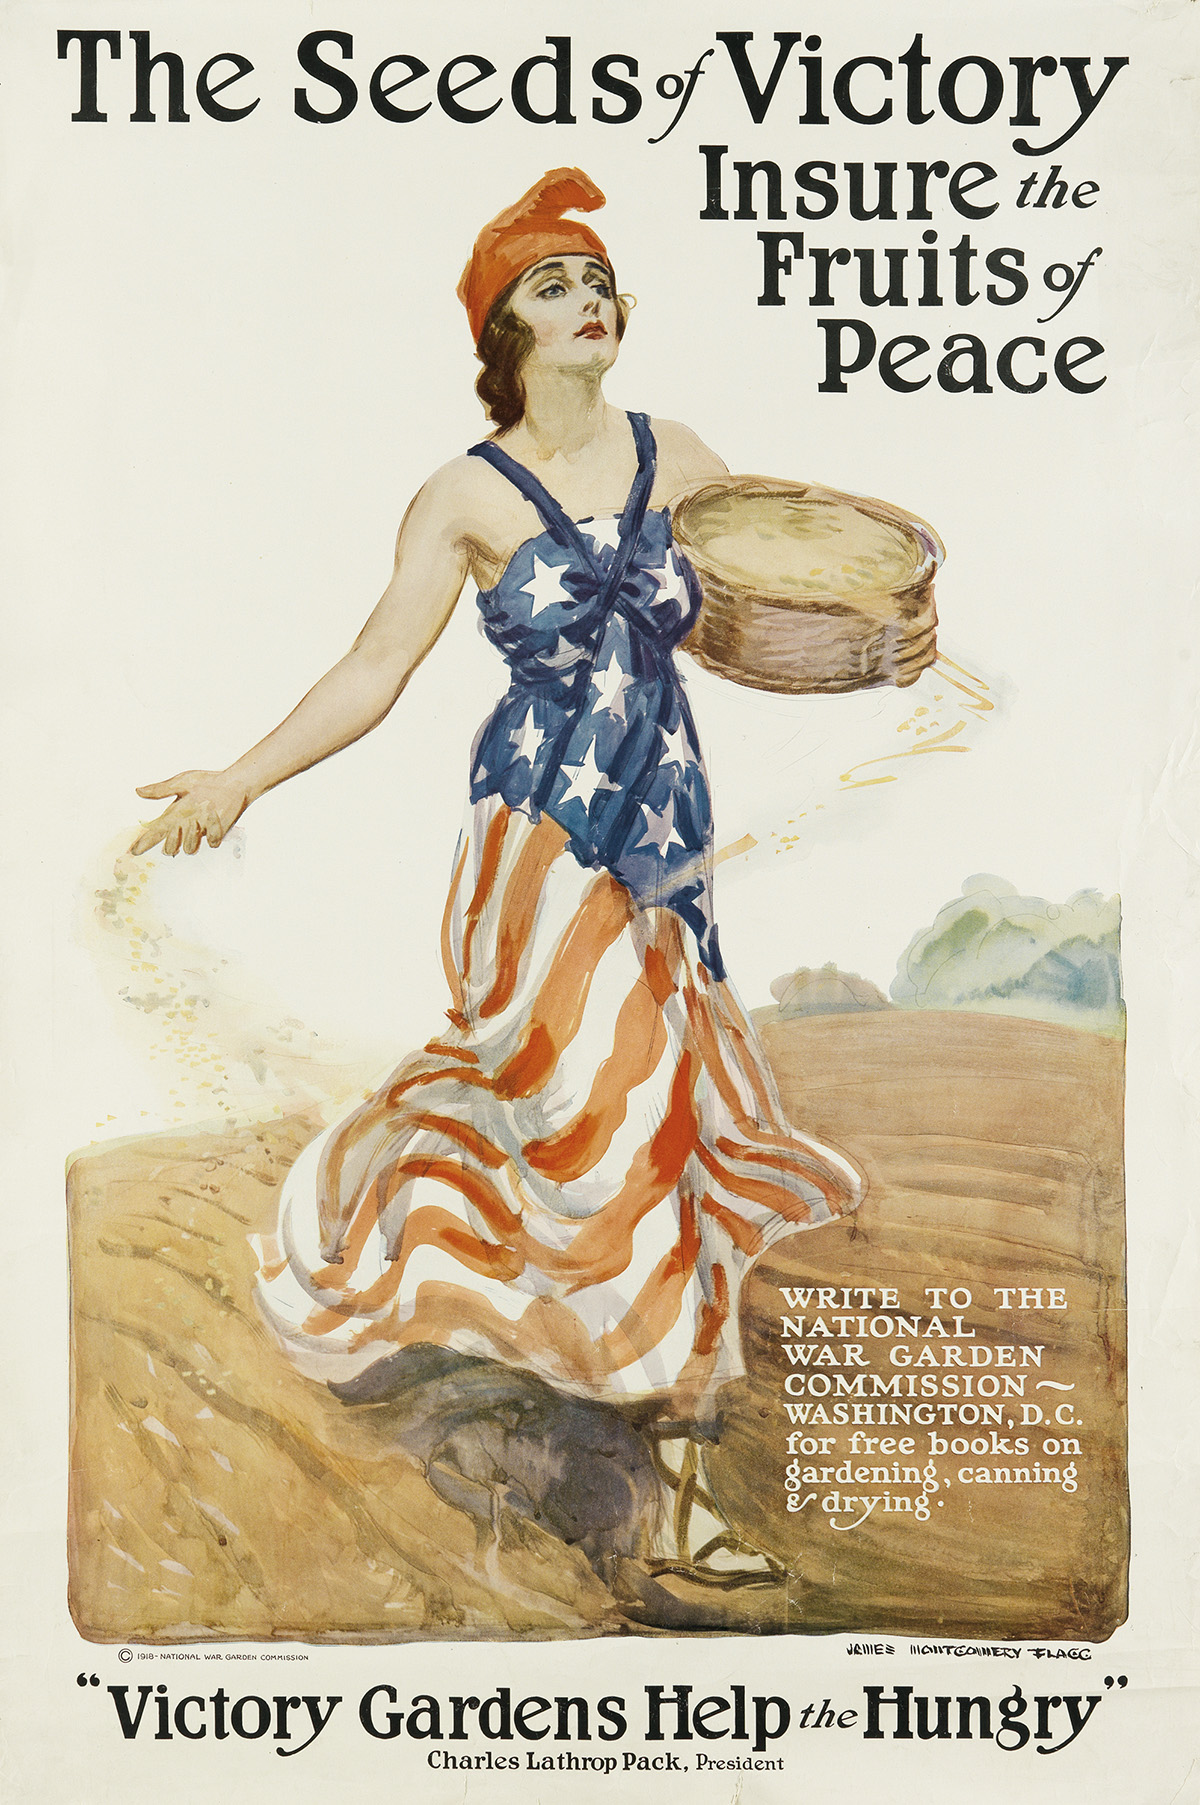 JAMES-MONTGOMERY-FLAGG-(1870-1960)-SOW-THE-SEEDS-OF-VICTORY-